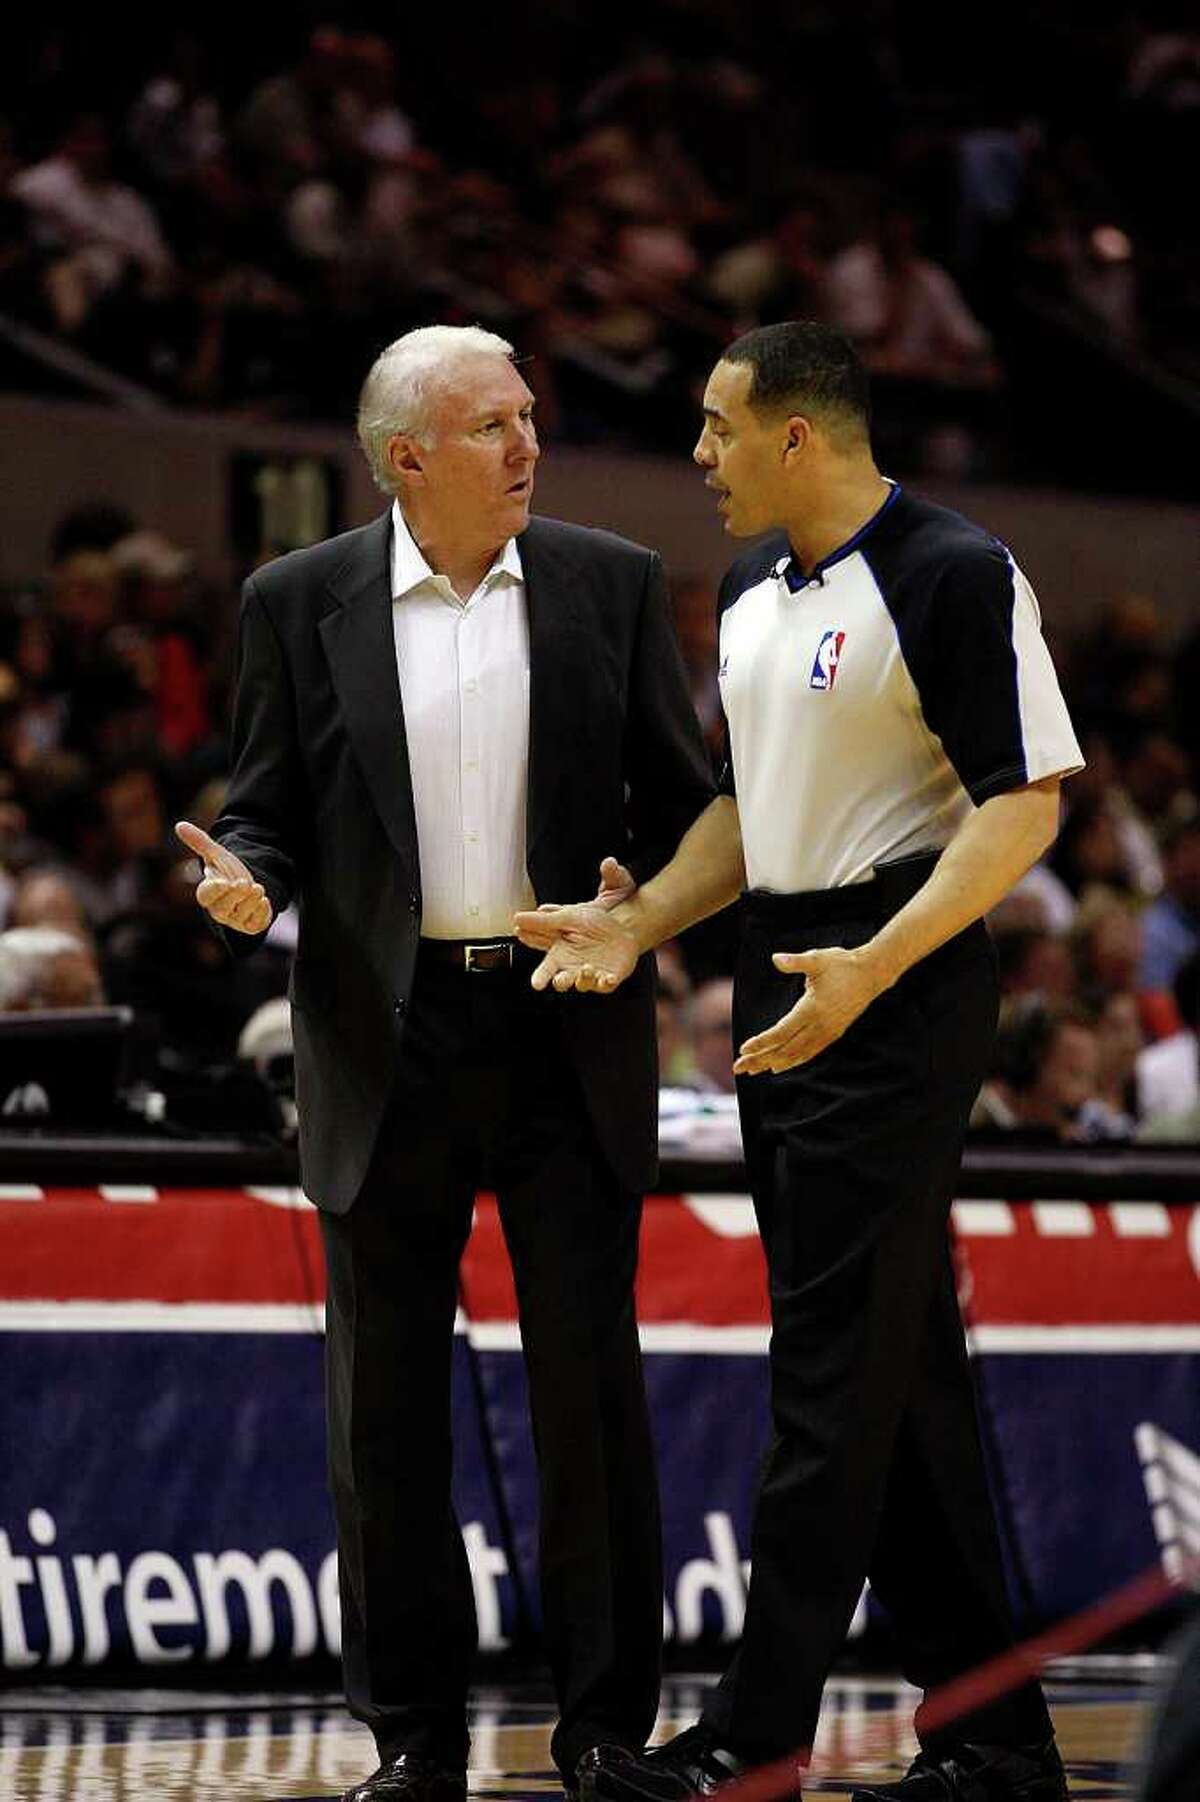 SPURS -- San Antonio Spurs Head Coach Gregg Popovich discusses a call with Official Curtis Blair in the first half against the Sacramento Kings at the AT&T Center, Wednesday, April 6, 2011. JERRY LARA/glara@express-news.net